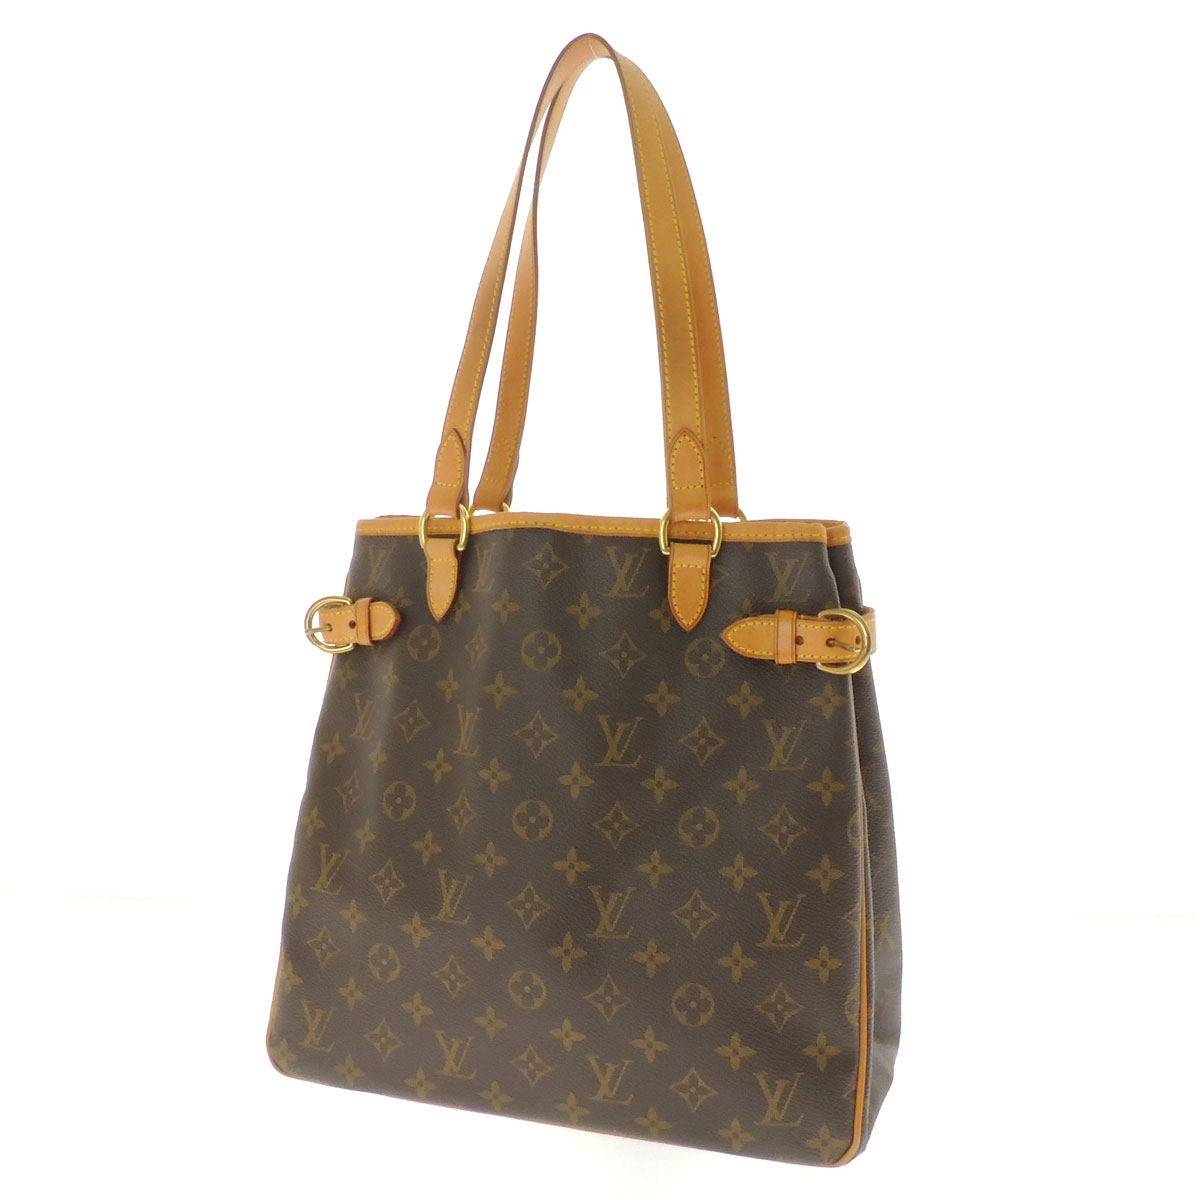 LOUIS VUITTON Batignolles vertical M51153 shoulder bag Monogram Canvas ladies